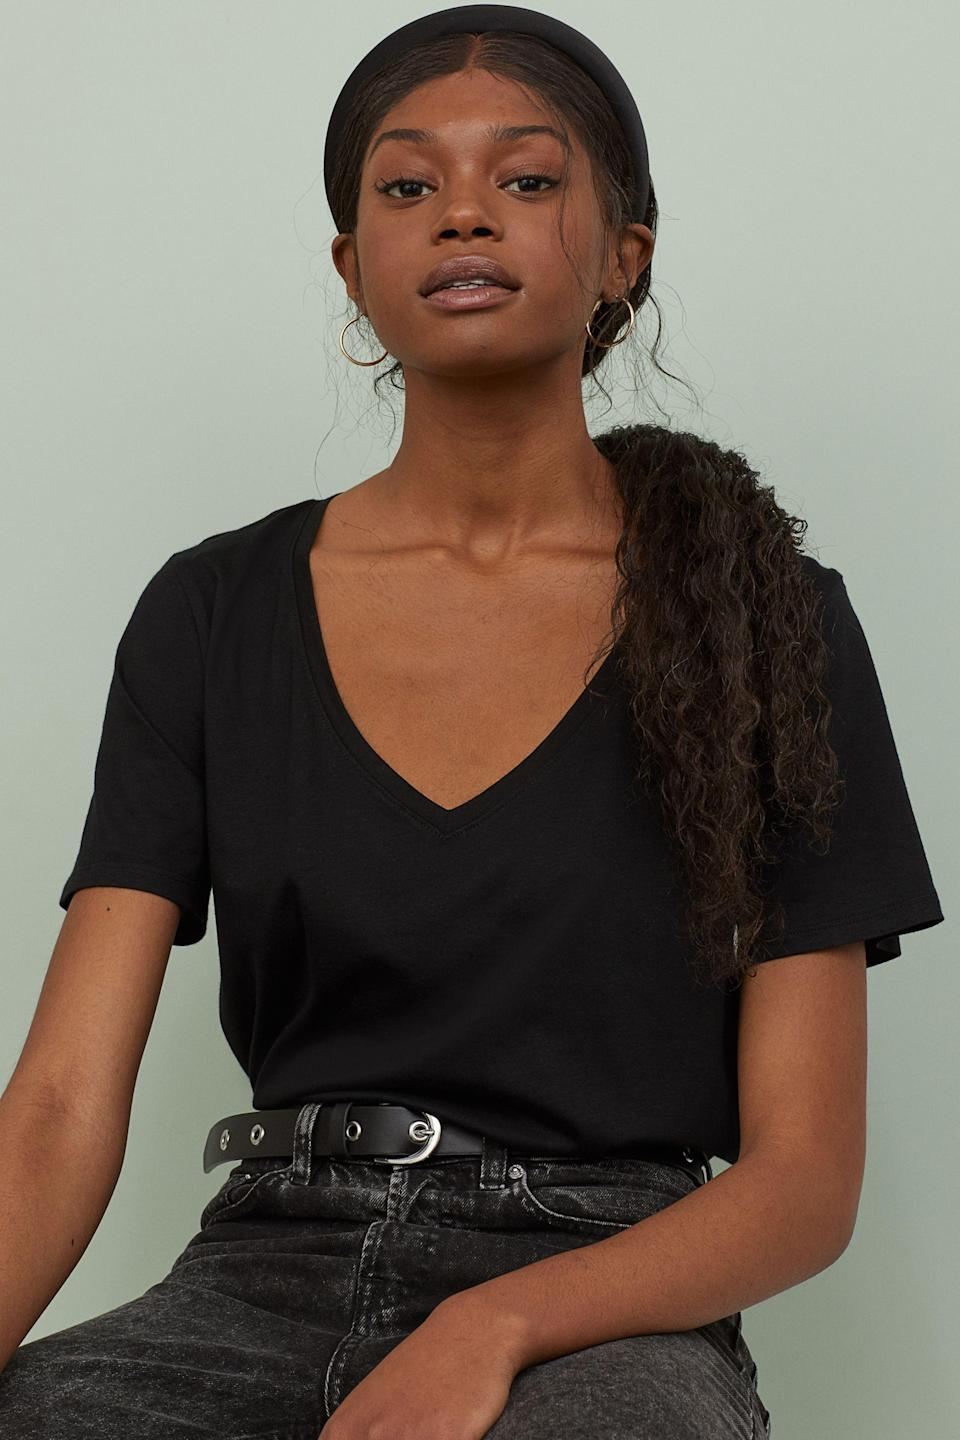 """The mileage you'll get out of this relaxed tee will make its price-per-wear plummet to pennies. $5, H&M. <a href=""""https://www2.hm.com/en_us/productpage.0718278001.html"""" rel=""""nofollow noopener"""" target=""""_blank"""" data-ylk=""""slk:Get it now!"""" class=""""link rapid-noclick-resp"""">Get it now!</a>"""